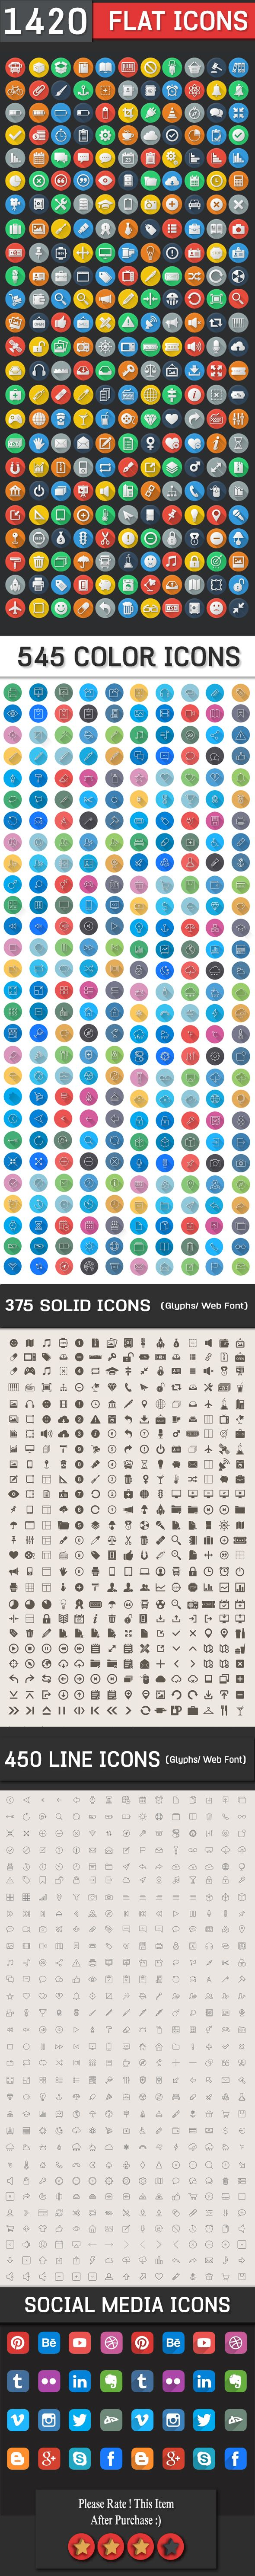 1420 Flat Icons - Colorful Icons Set by CURSORCH.deviantart.com on @deviantART  business, FREE-ICONS, FREEBIES, icons, media, miscellaneous, objects, technology, Uncategorized, web app, app development, application, bank, banking, business, collaborations, collection, colorful, communication, computer, concept, consultancy, creative, cross platform, development, document, download, e-commerce, finance, flat, flat icons, glyphs, graphic, graphics, icon, icons, idea,